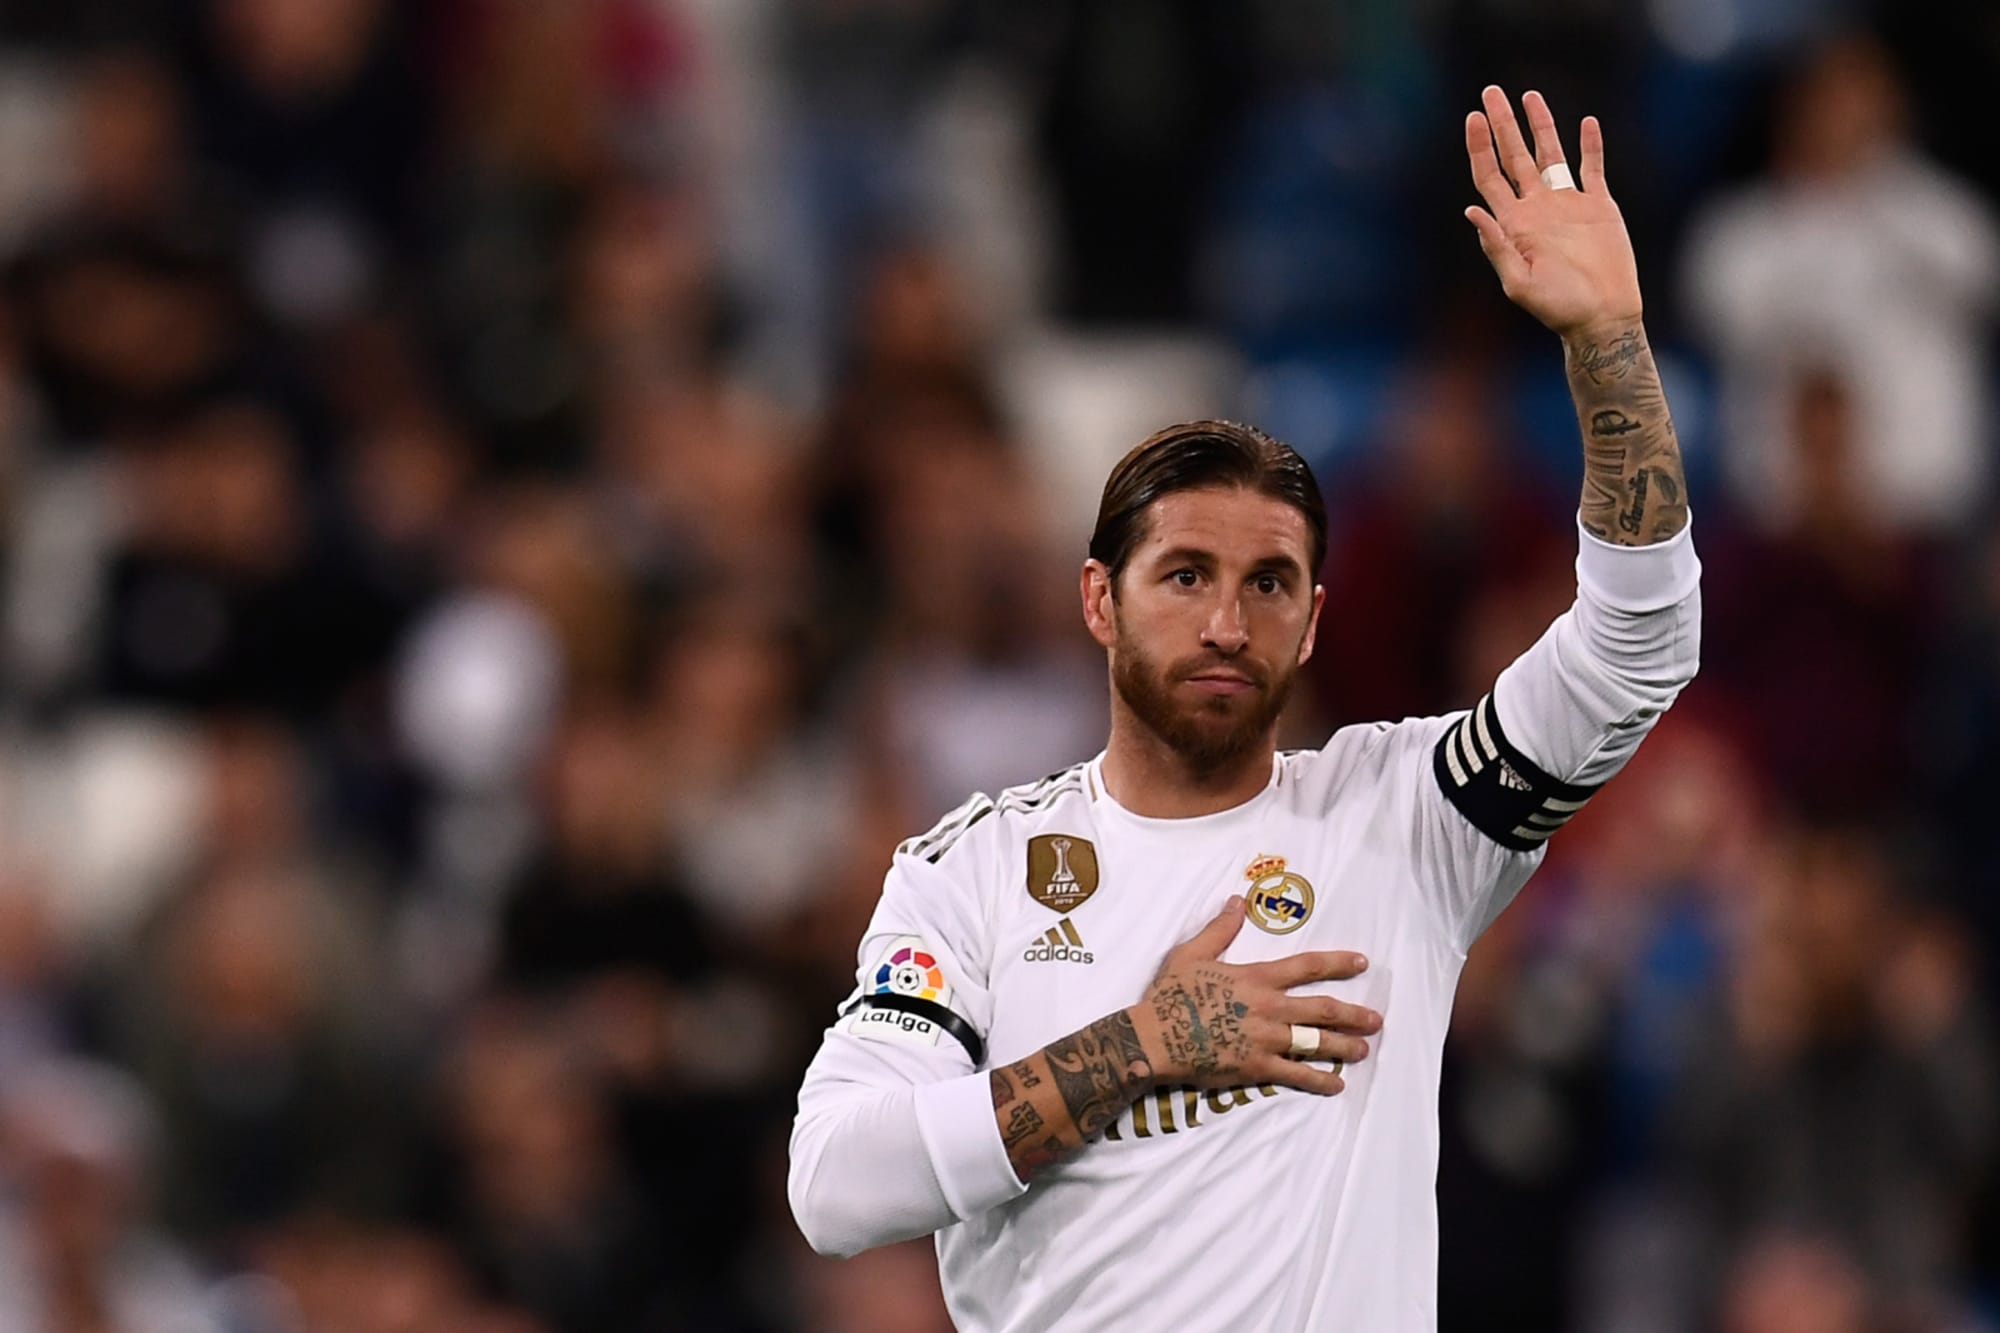 Real Madrid: 3 clubs that Sergio Ramos could sign for next season